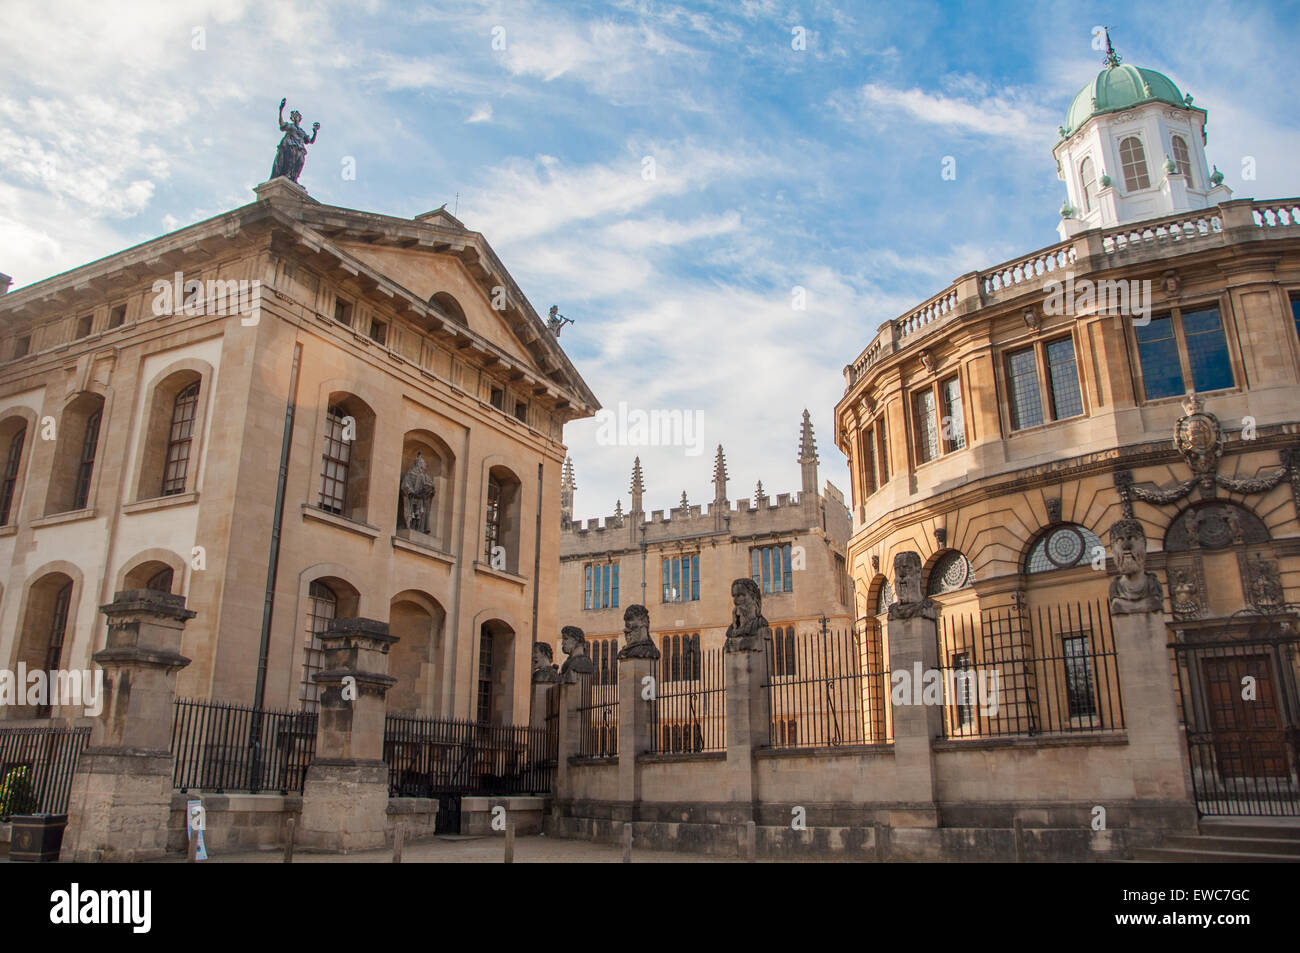 View of the Bodleian Library (Clarendon Building and Sheldonian Theatre), Oxford, United Kingdom - Stock Image